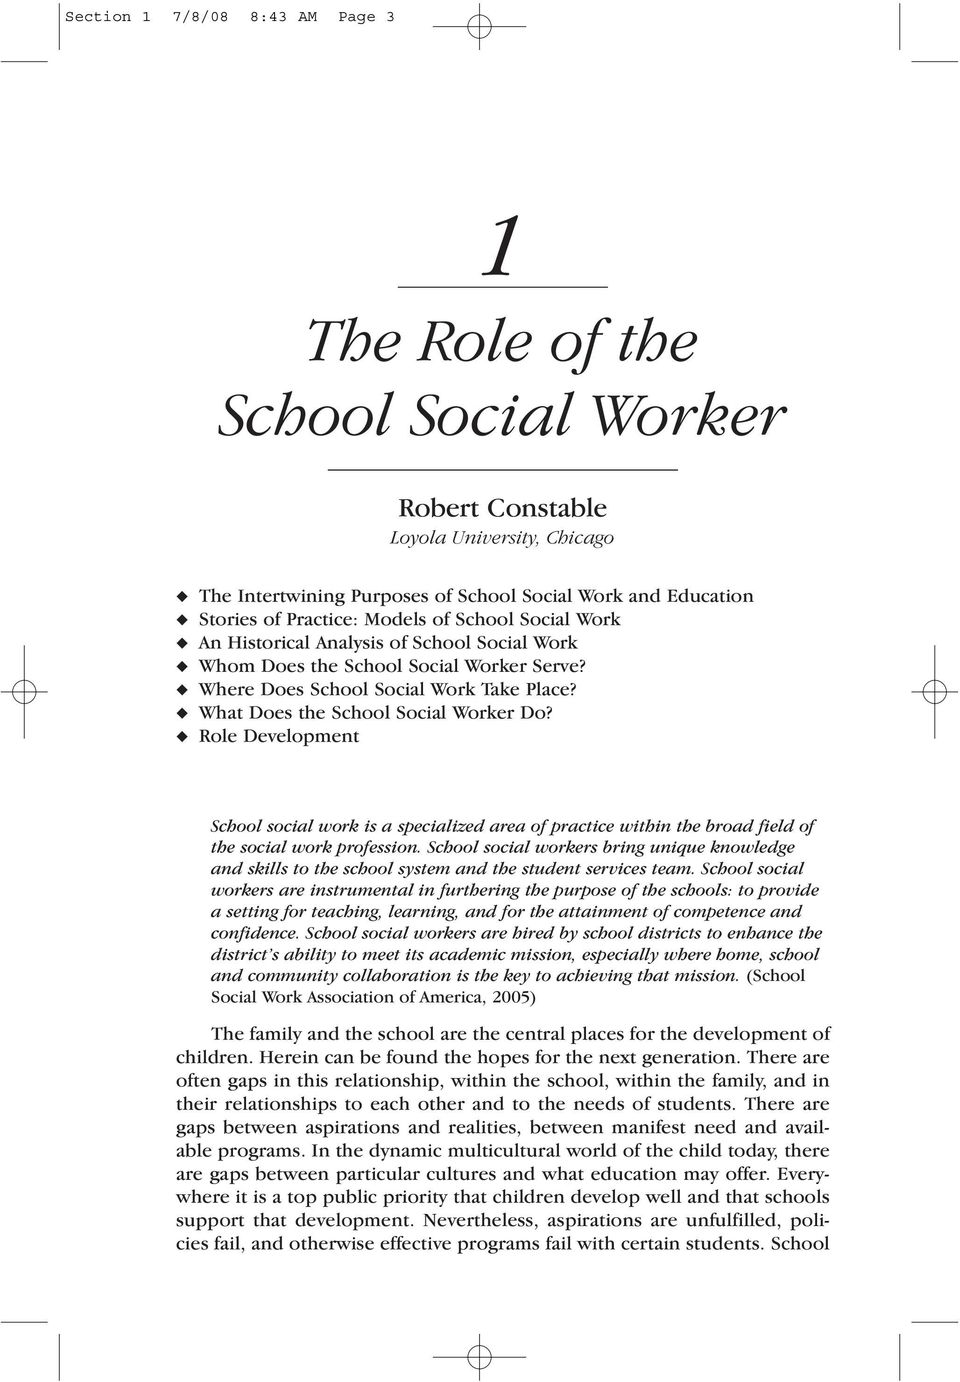 Role Development School social work is a specialized area of practice within the broad field of the social work profession.